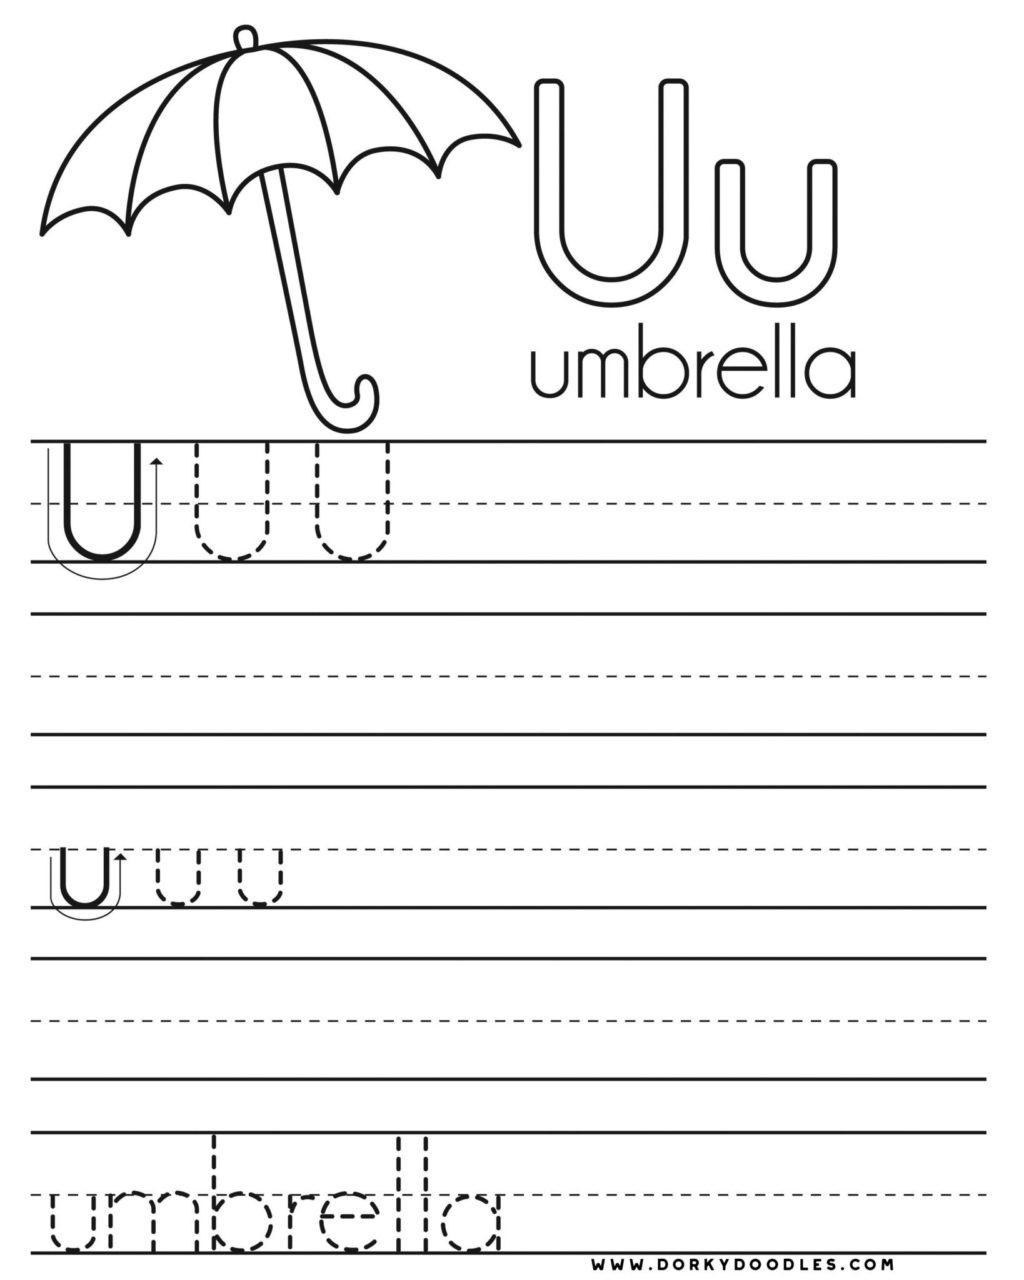 practice writing letters printablerksheets letter u and coloring page dorky doodles free 1024x1280